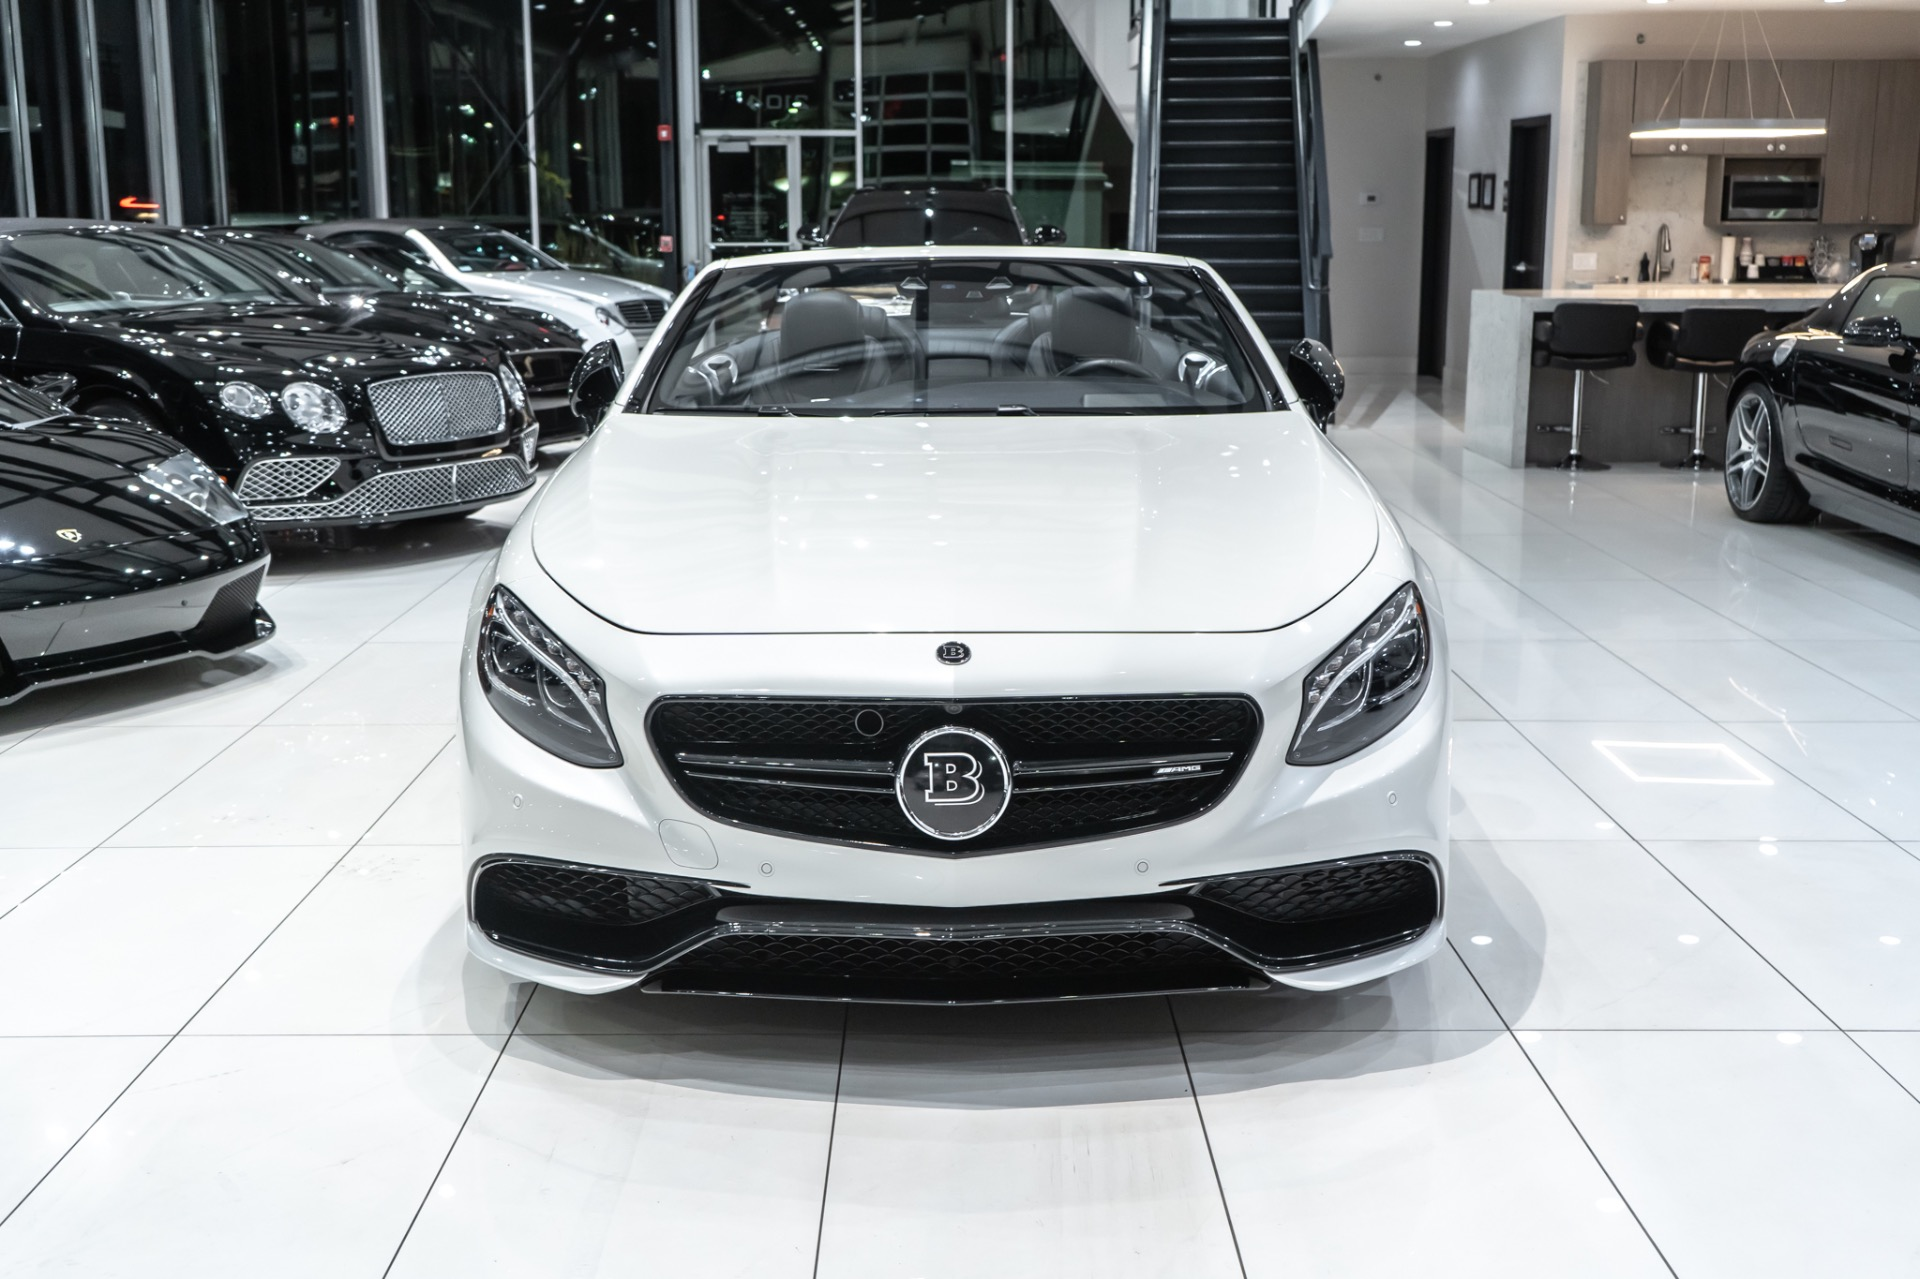 Used-2017-Mercedes-Benz-S63-AMG-4MATIC-Convertible-Brabus-Package-650-Hard-Loaded-EVERY-Option-Possible